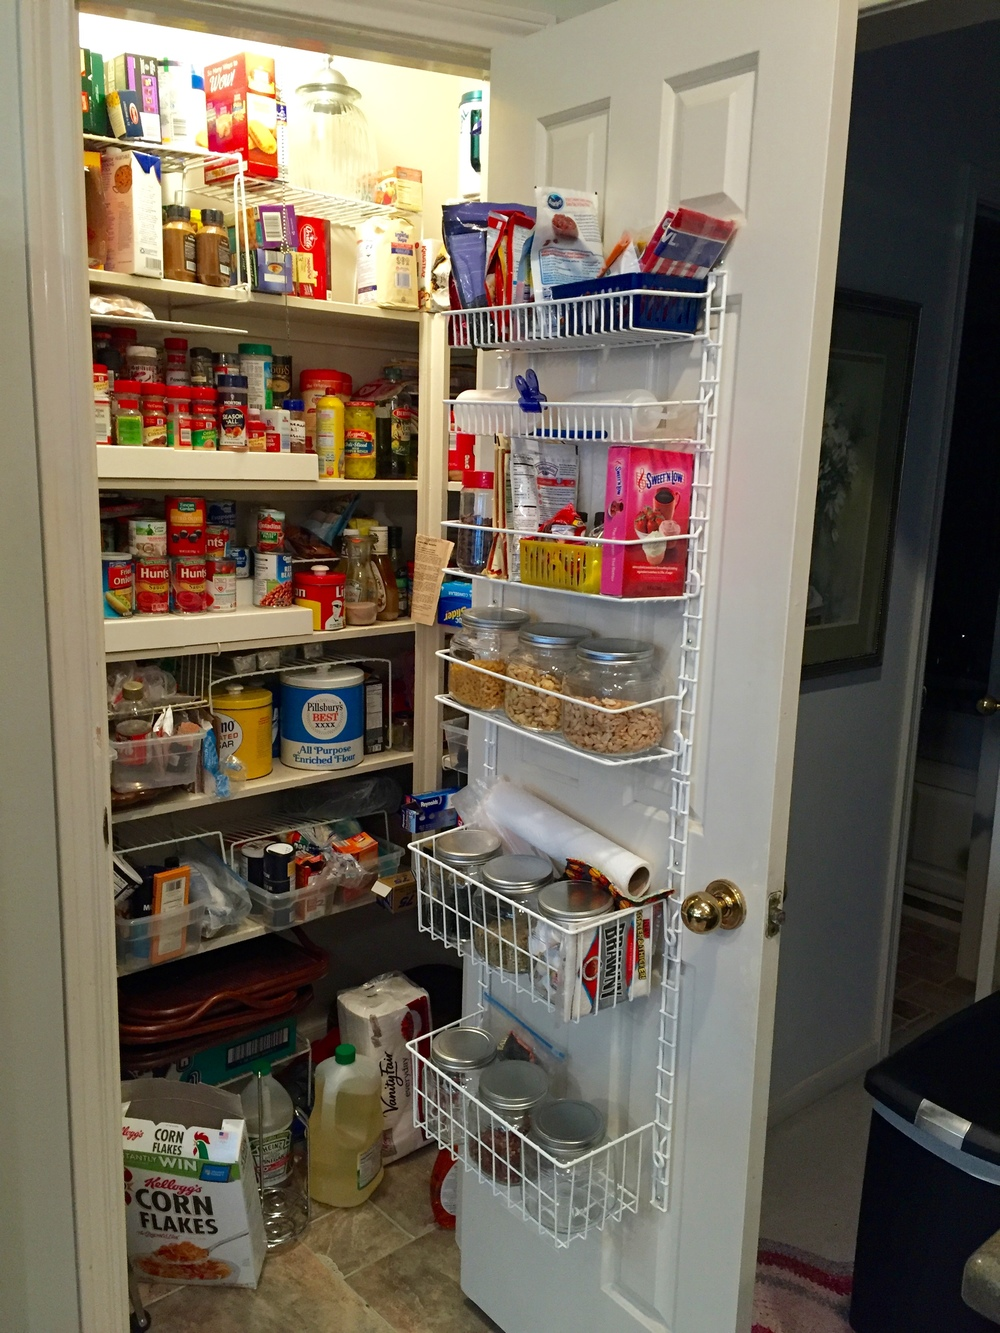 a kitchen into or pantries dream cabinets pantrys with ideas disorganized is organizers these great cluttered pantry pin your best larder turn and storage nightmare